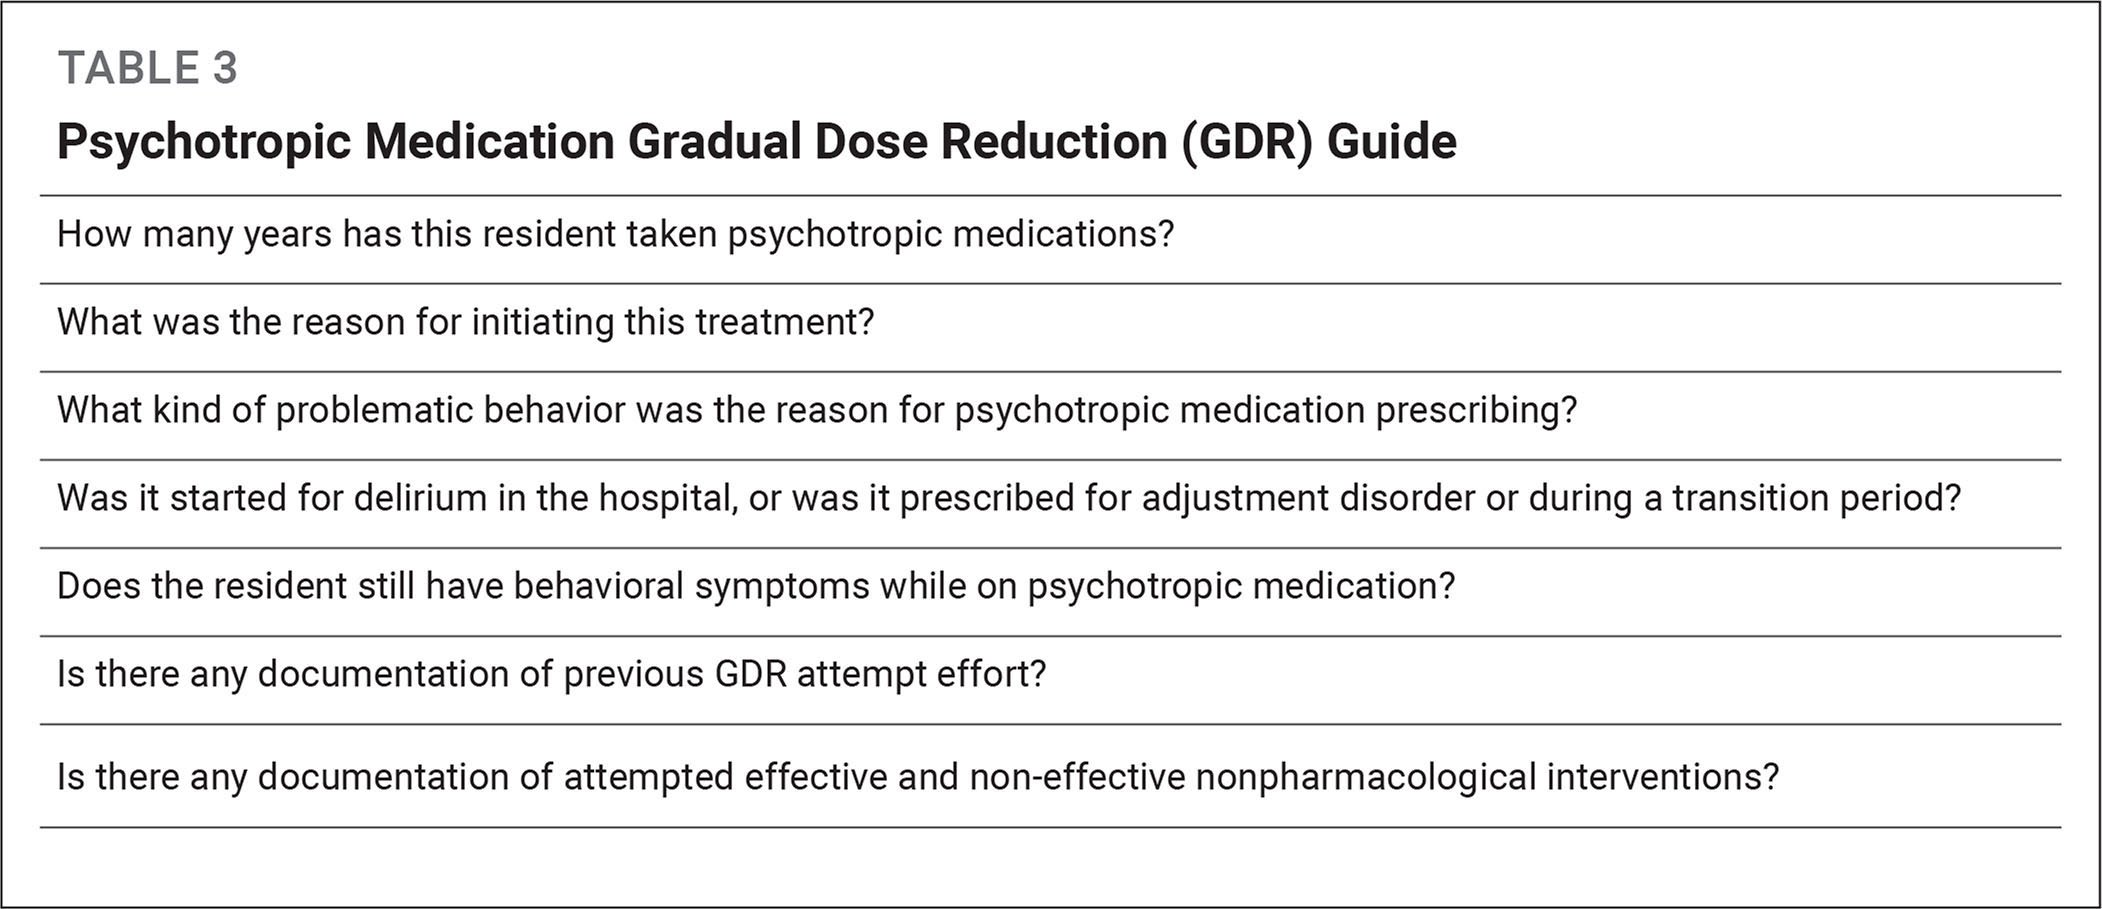 Psychotropic Medication Gradual Dose Reduction (GDR) Guide